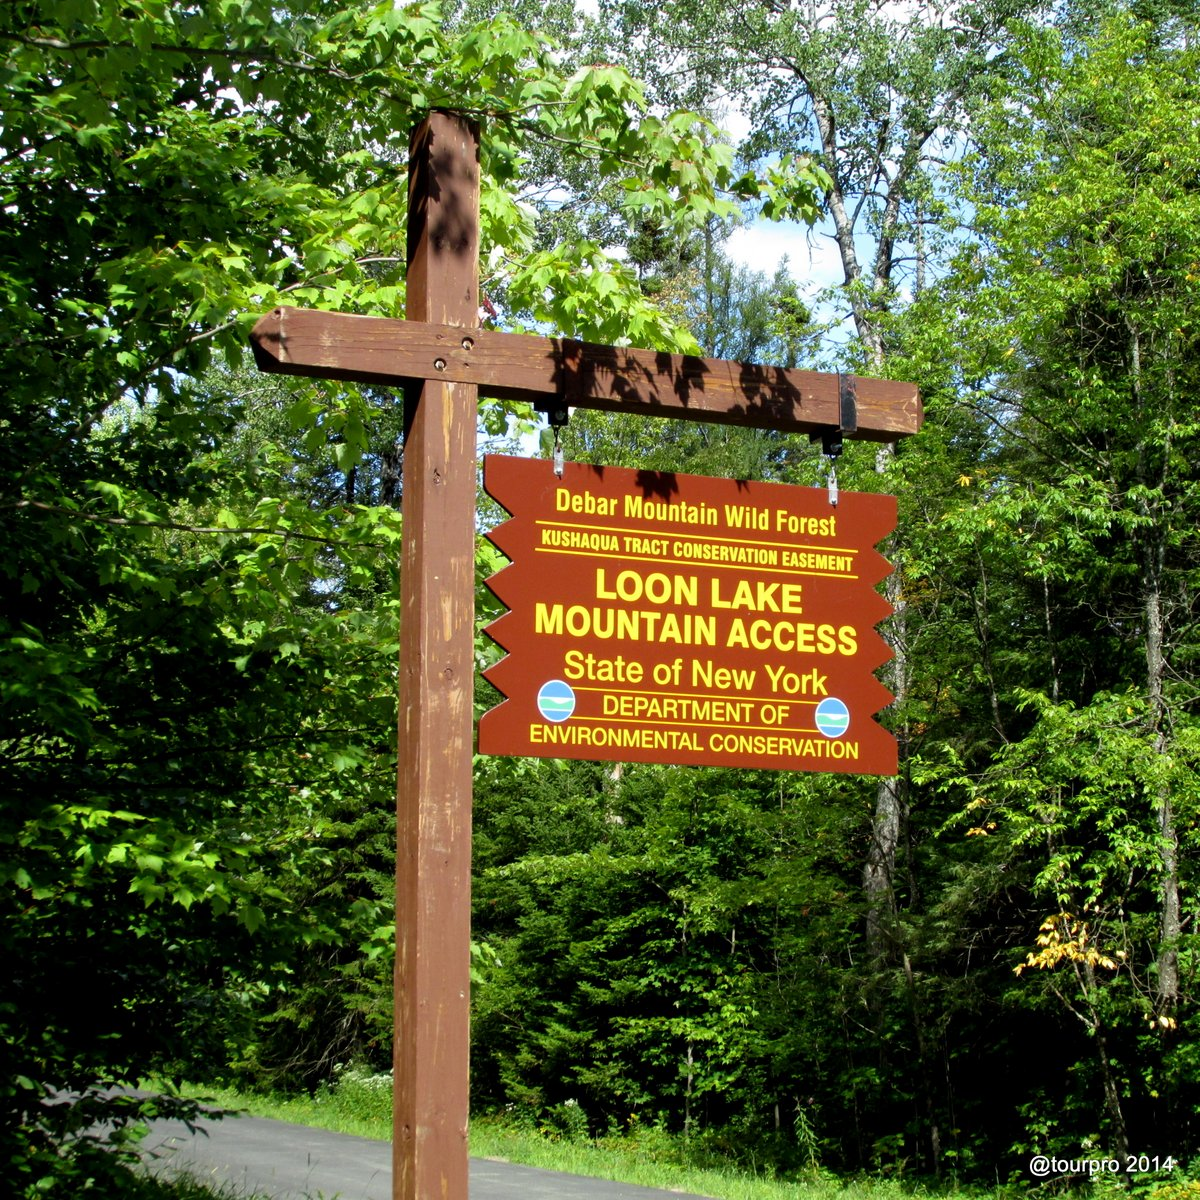 Adirondack Base Camp — Drop Your Pack and Stay Awhile